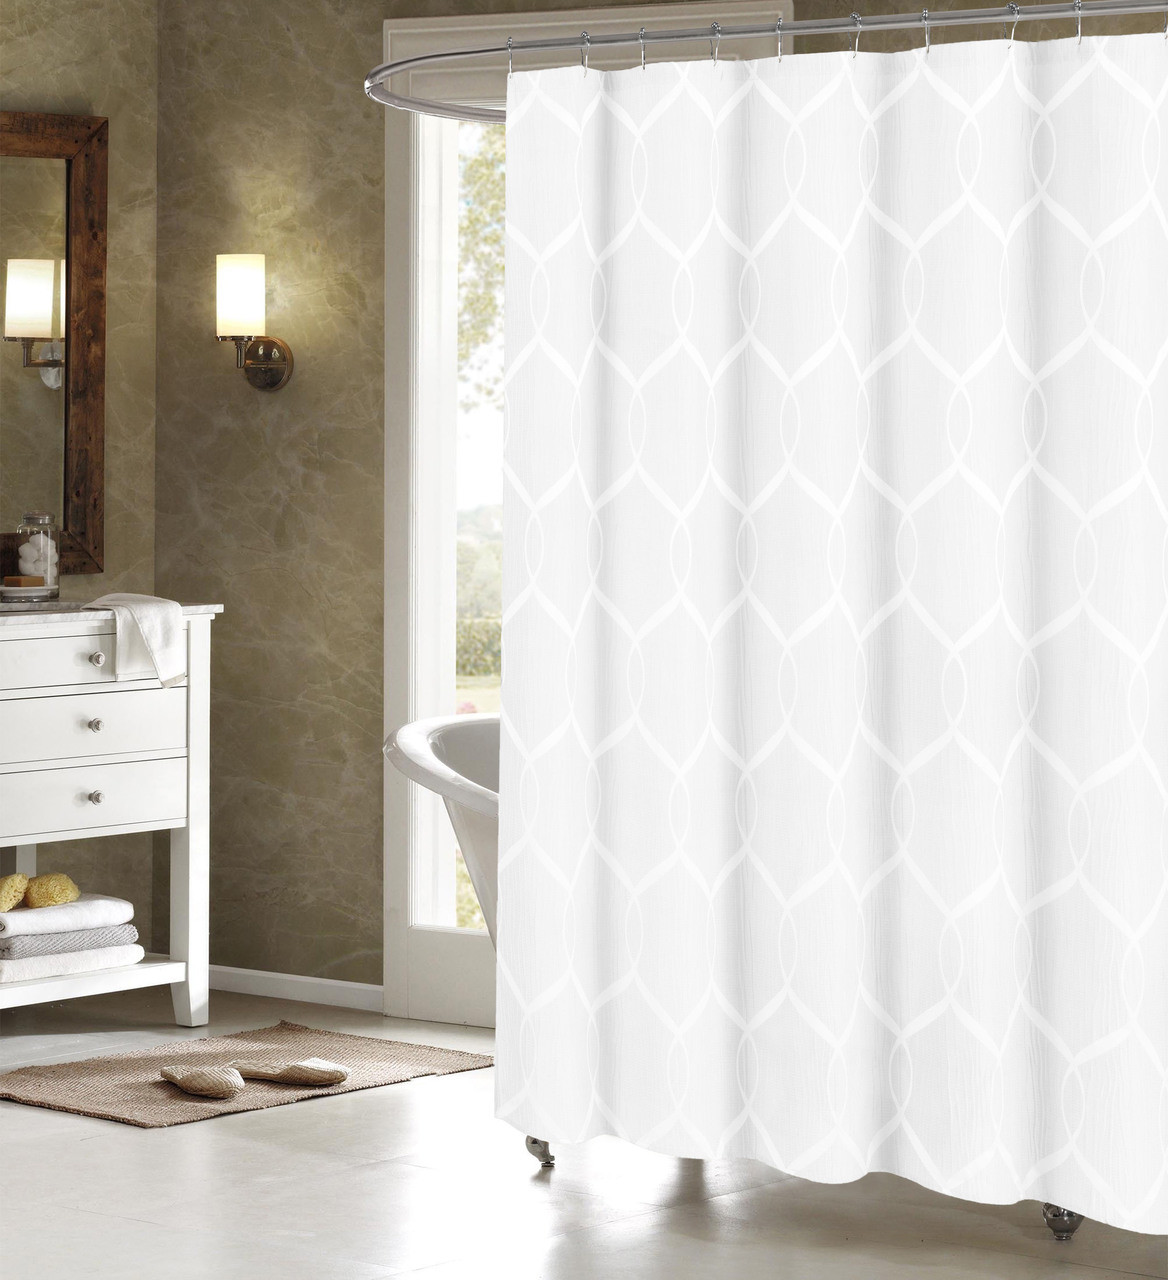 Off White Jacquard Fabric Shower Curtain Whitetrellis Design 70 X 72